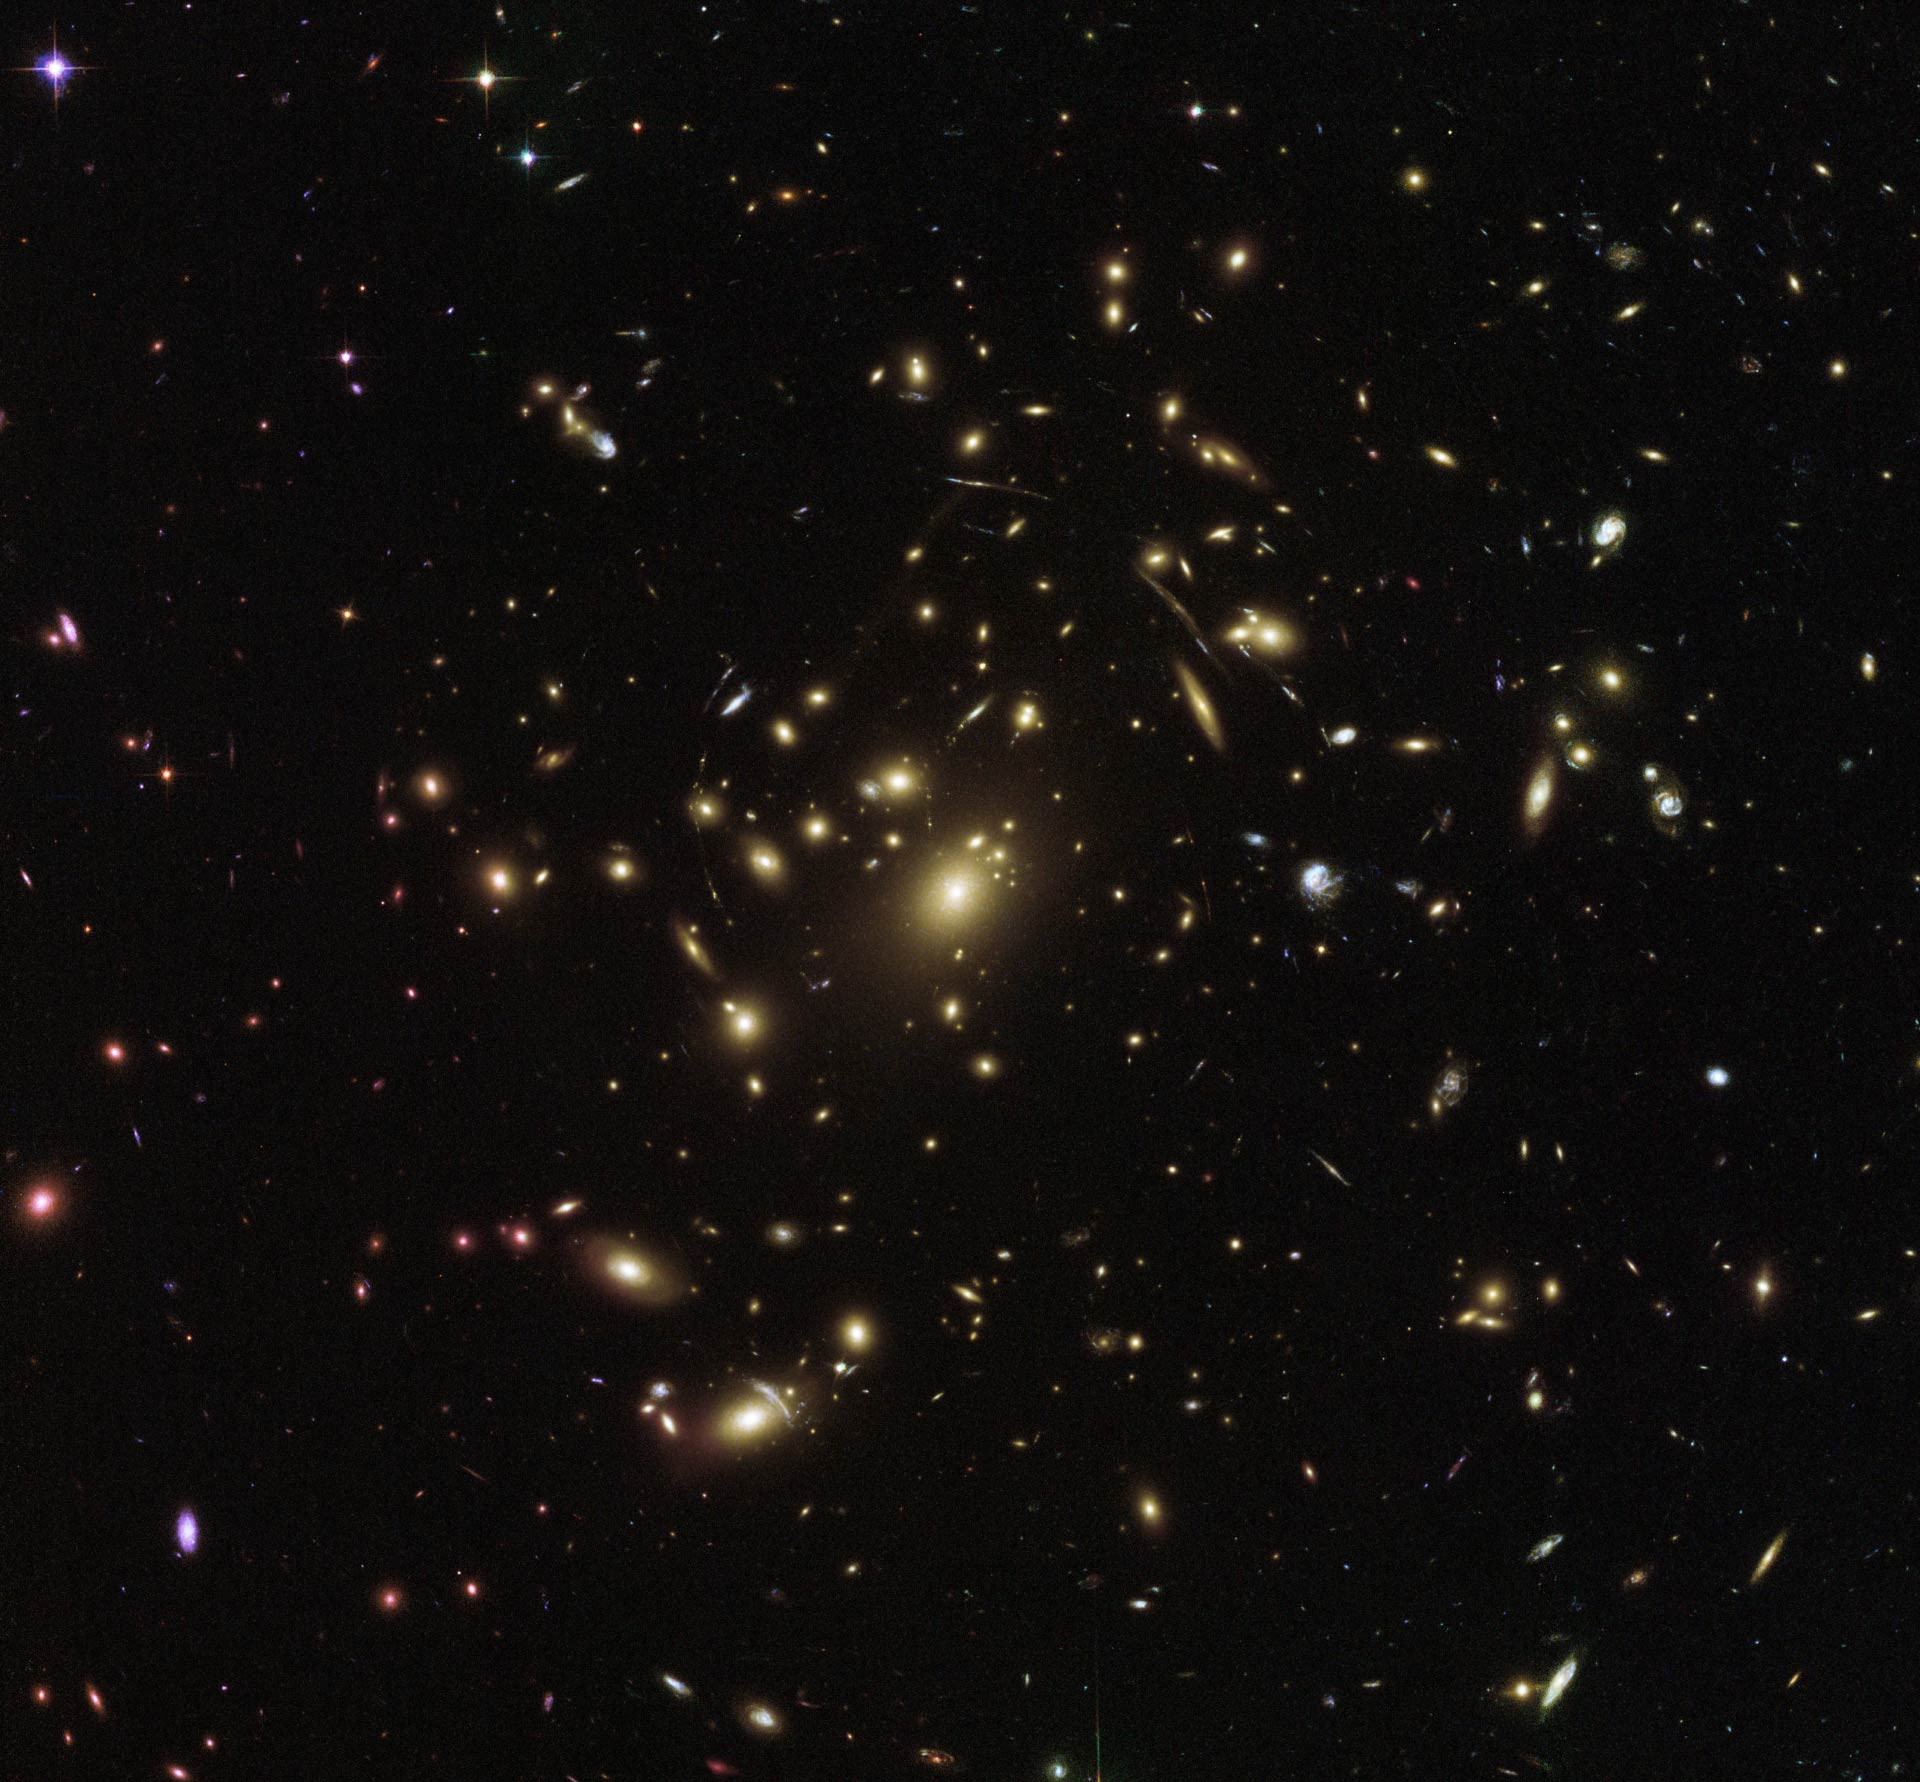 This Hubble image shows the galaxy cluster Abell 2537. The image is a  composite of